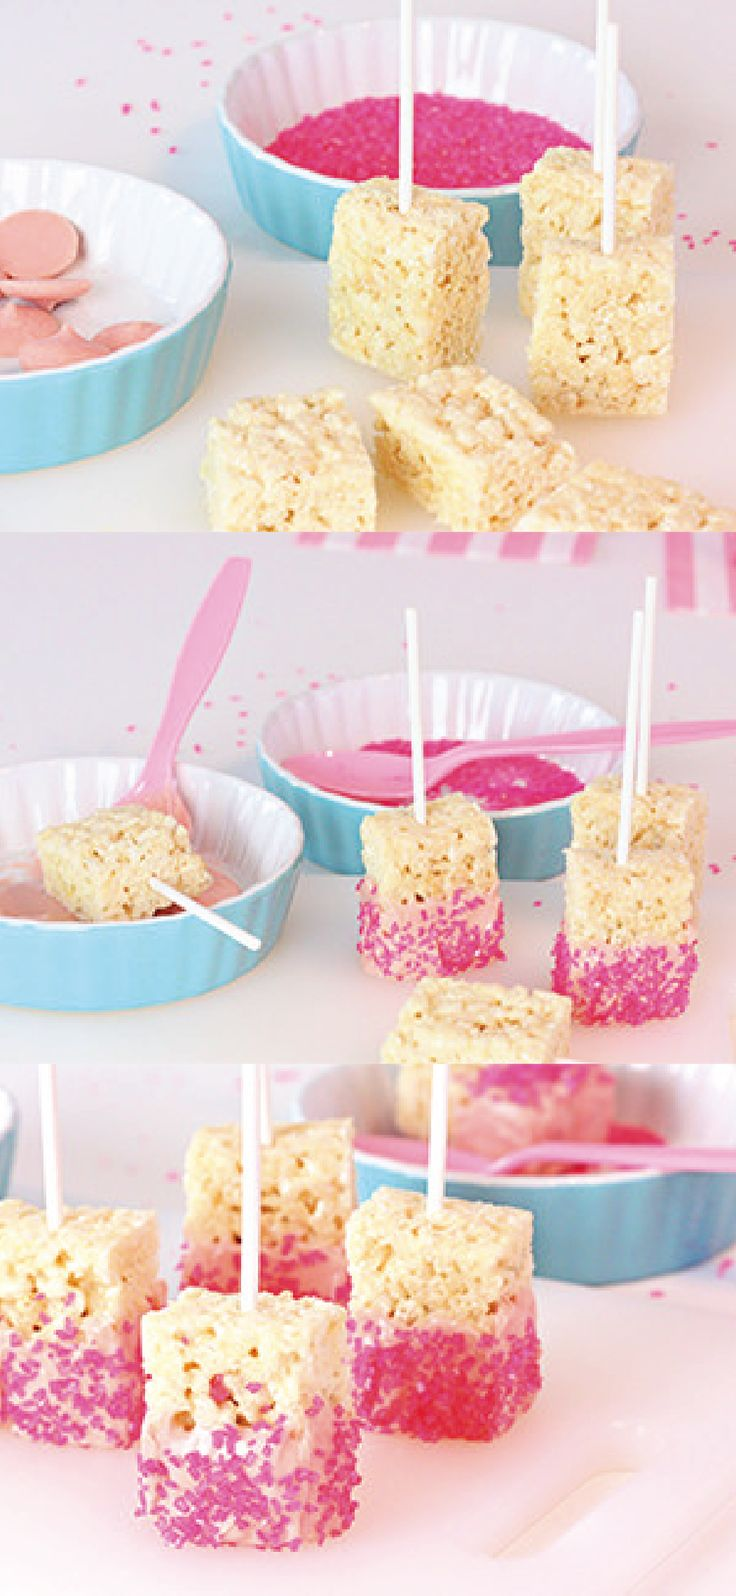 Looking for something fun and easy to share on Valentine's Day? These little Rice Krispies Treats® Pops are even easy to make with your kids since they can help decorate each dessert with pink sprinkles!